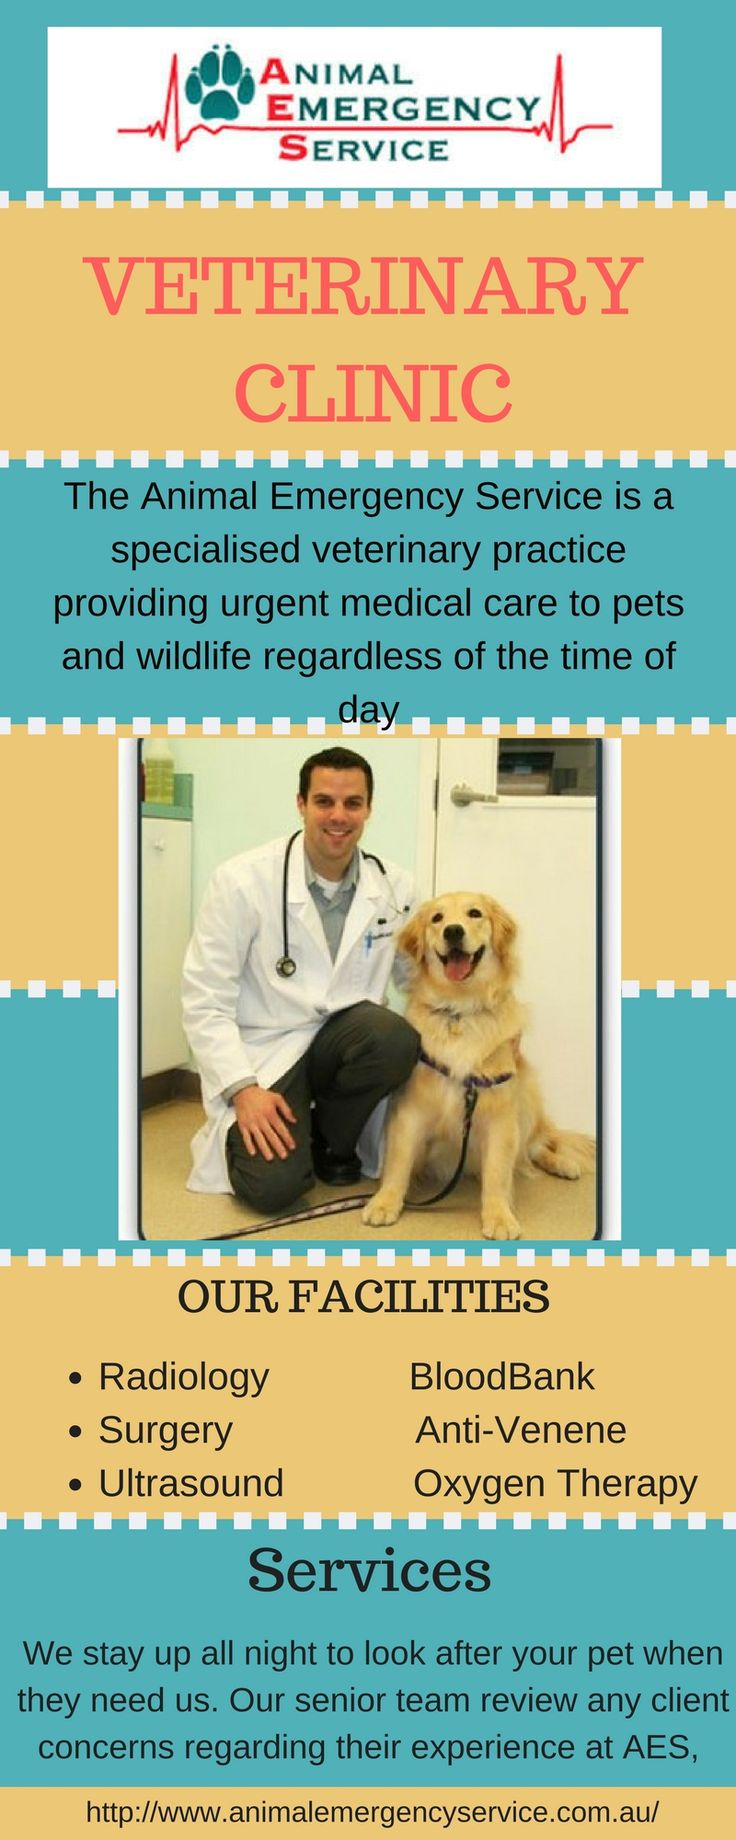 Veterinarians have a responsibility to provide out of hours treatment for their patients. For a long time this meant exhausting working hours for vets. It was not uncommon for an individual vet to get called out two to three times a night for emergencies after a long day at the surgery.